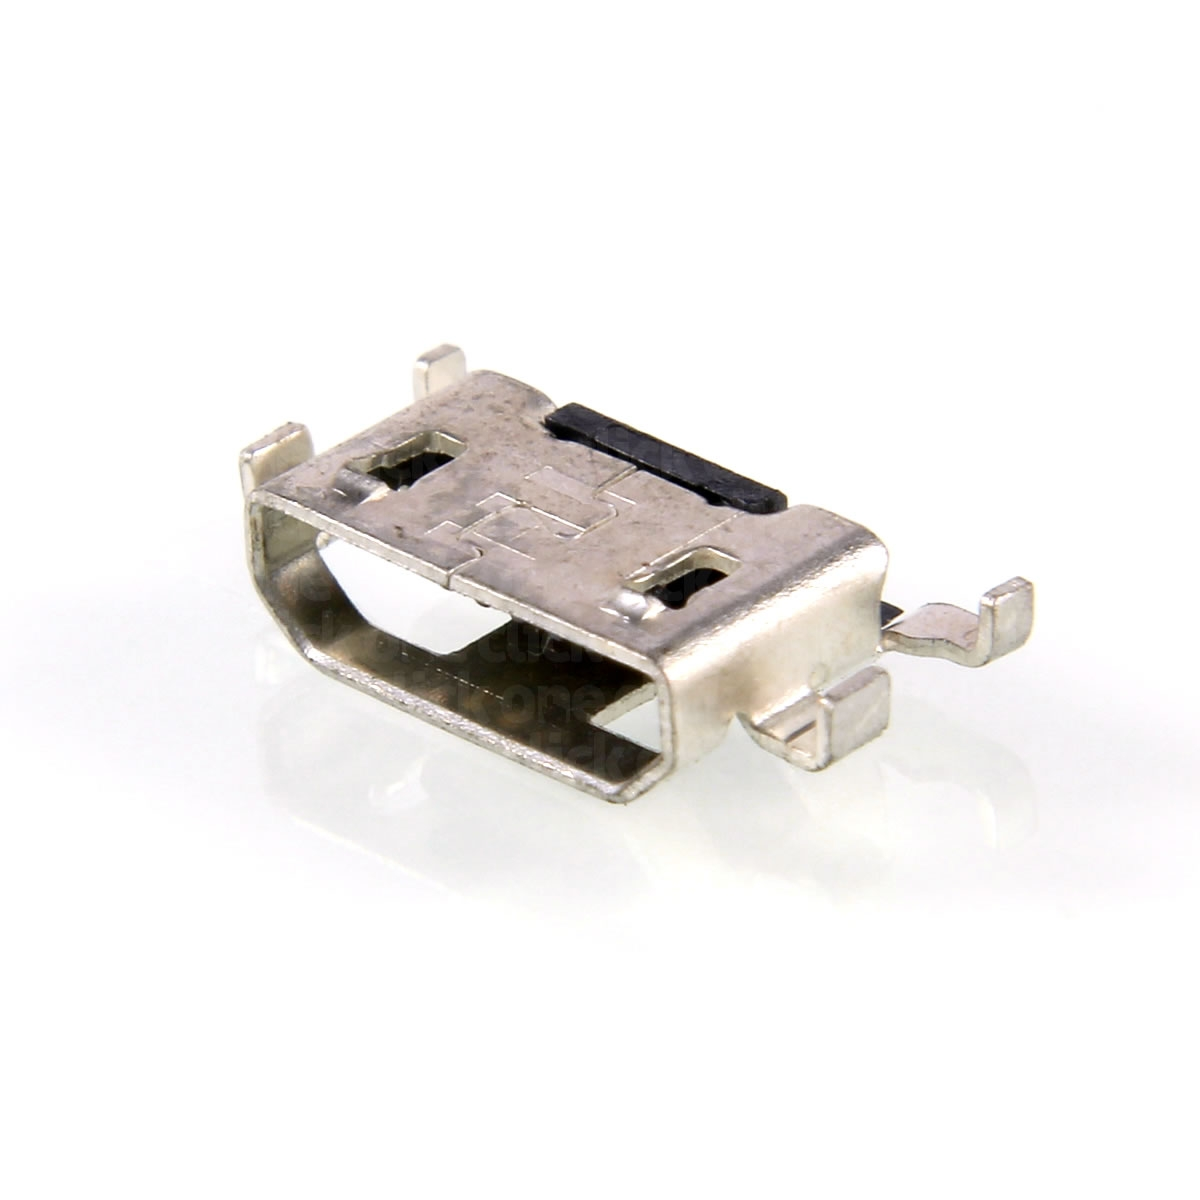 One Click Components Micro USB Charging Port Jack Socket Connector for Nokia Lumia 1320